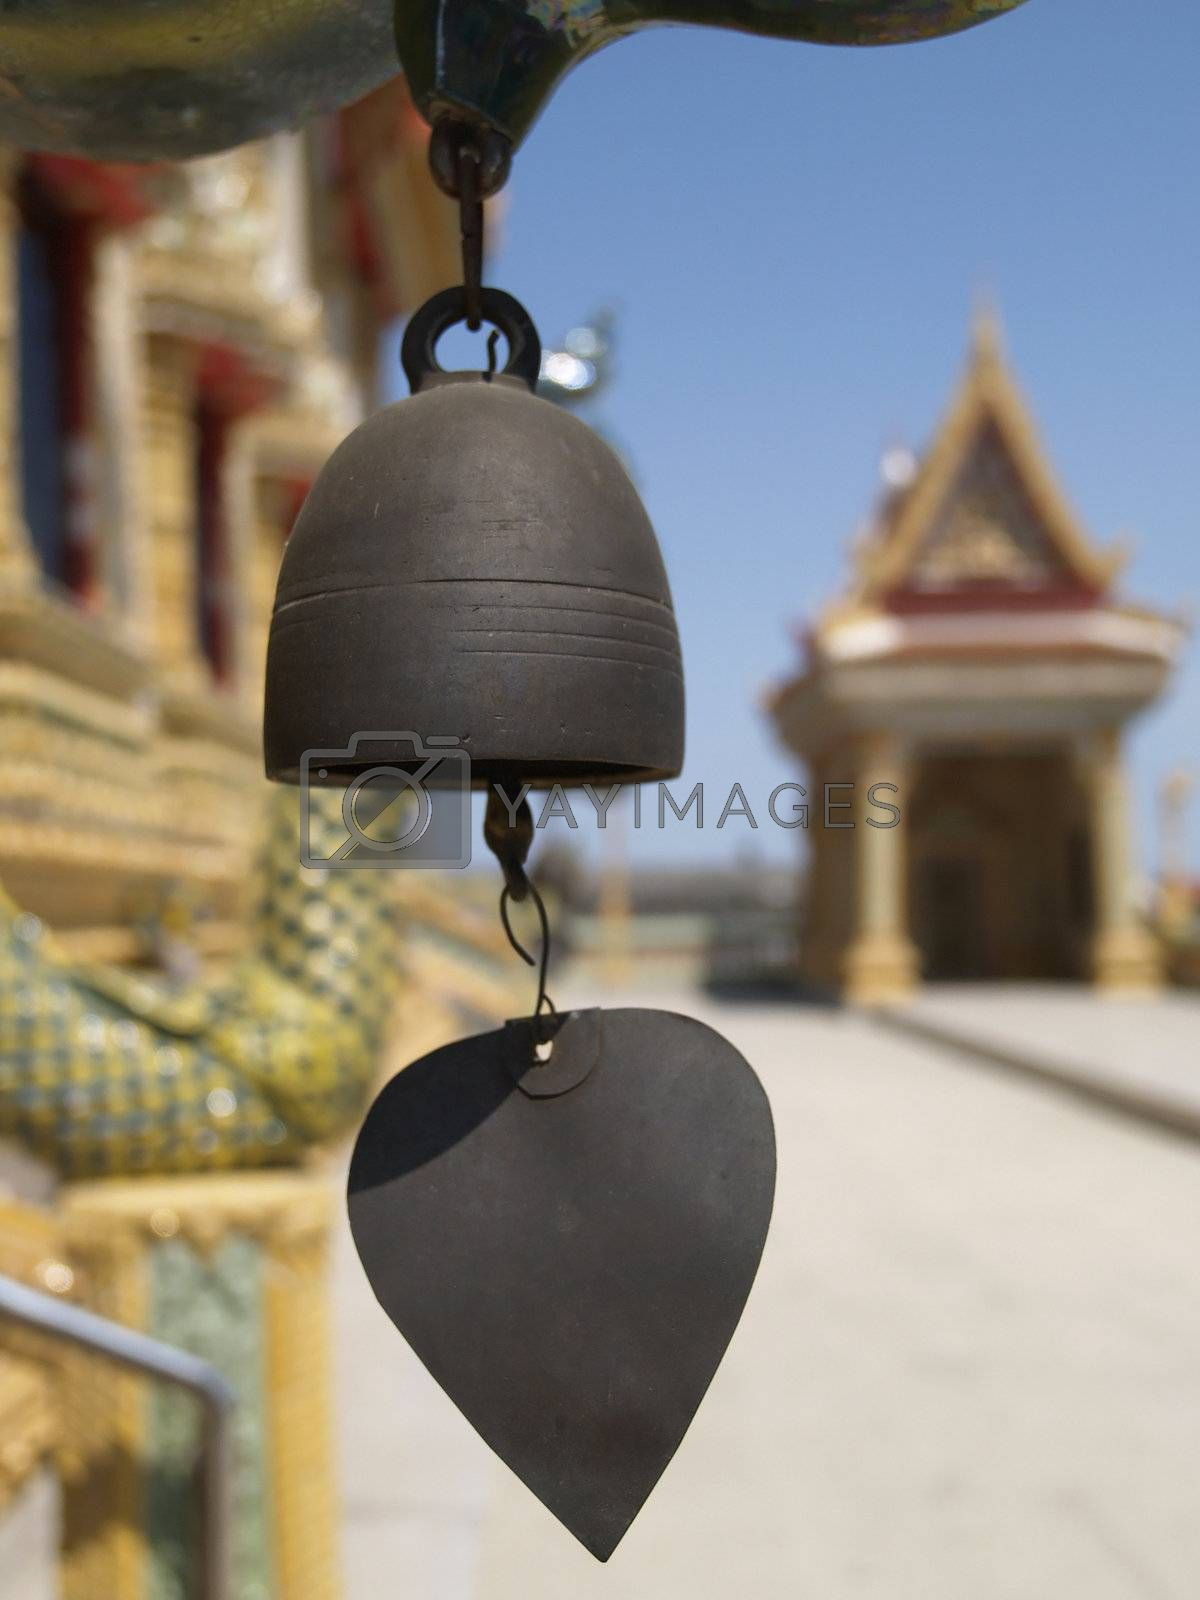 Chime at Buddhist temple by epixx